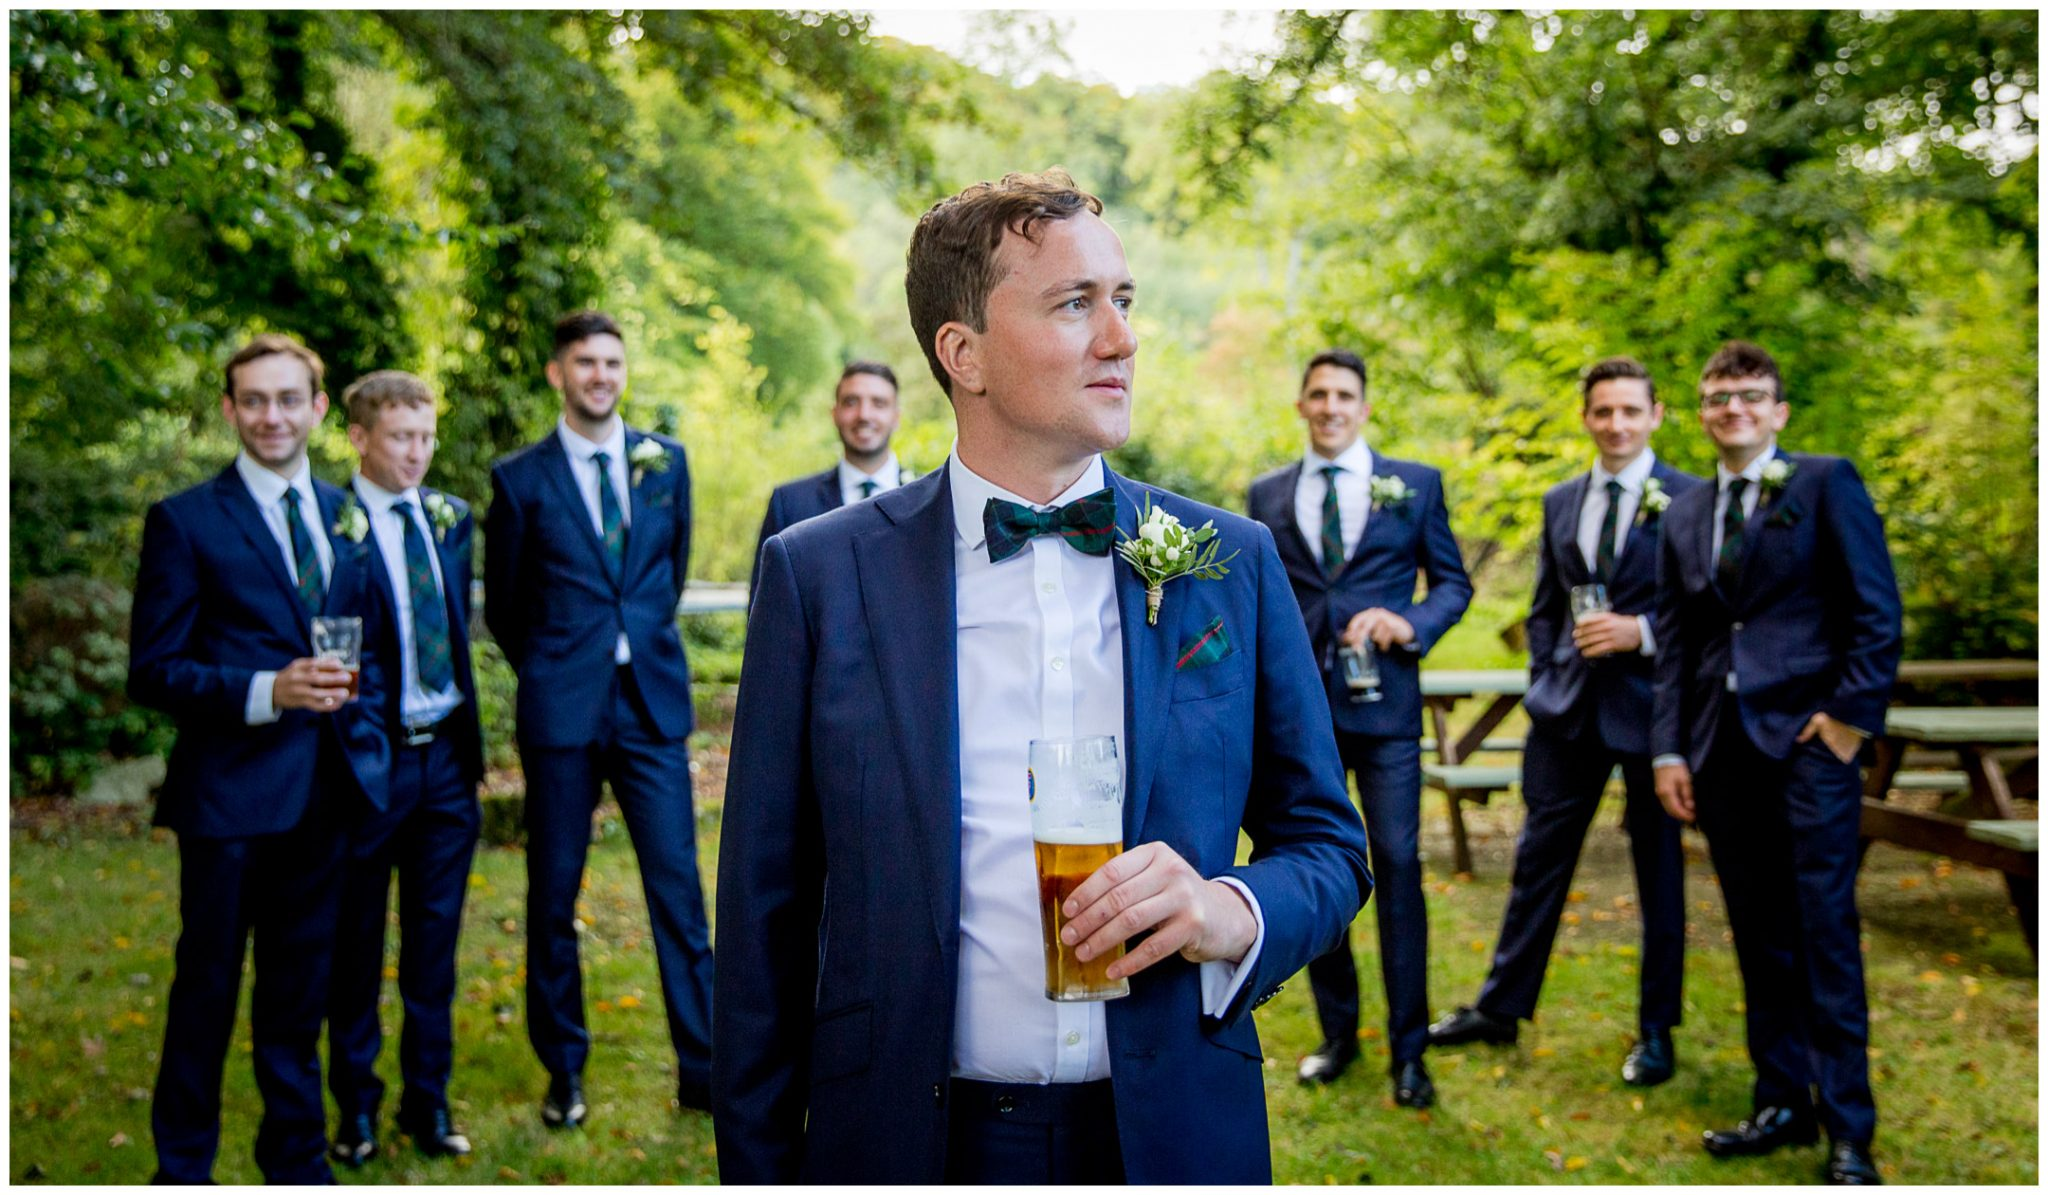 Groom portrait with groomsmen in background